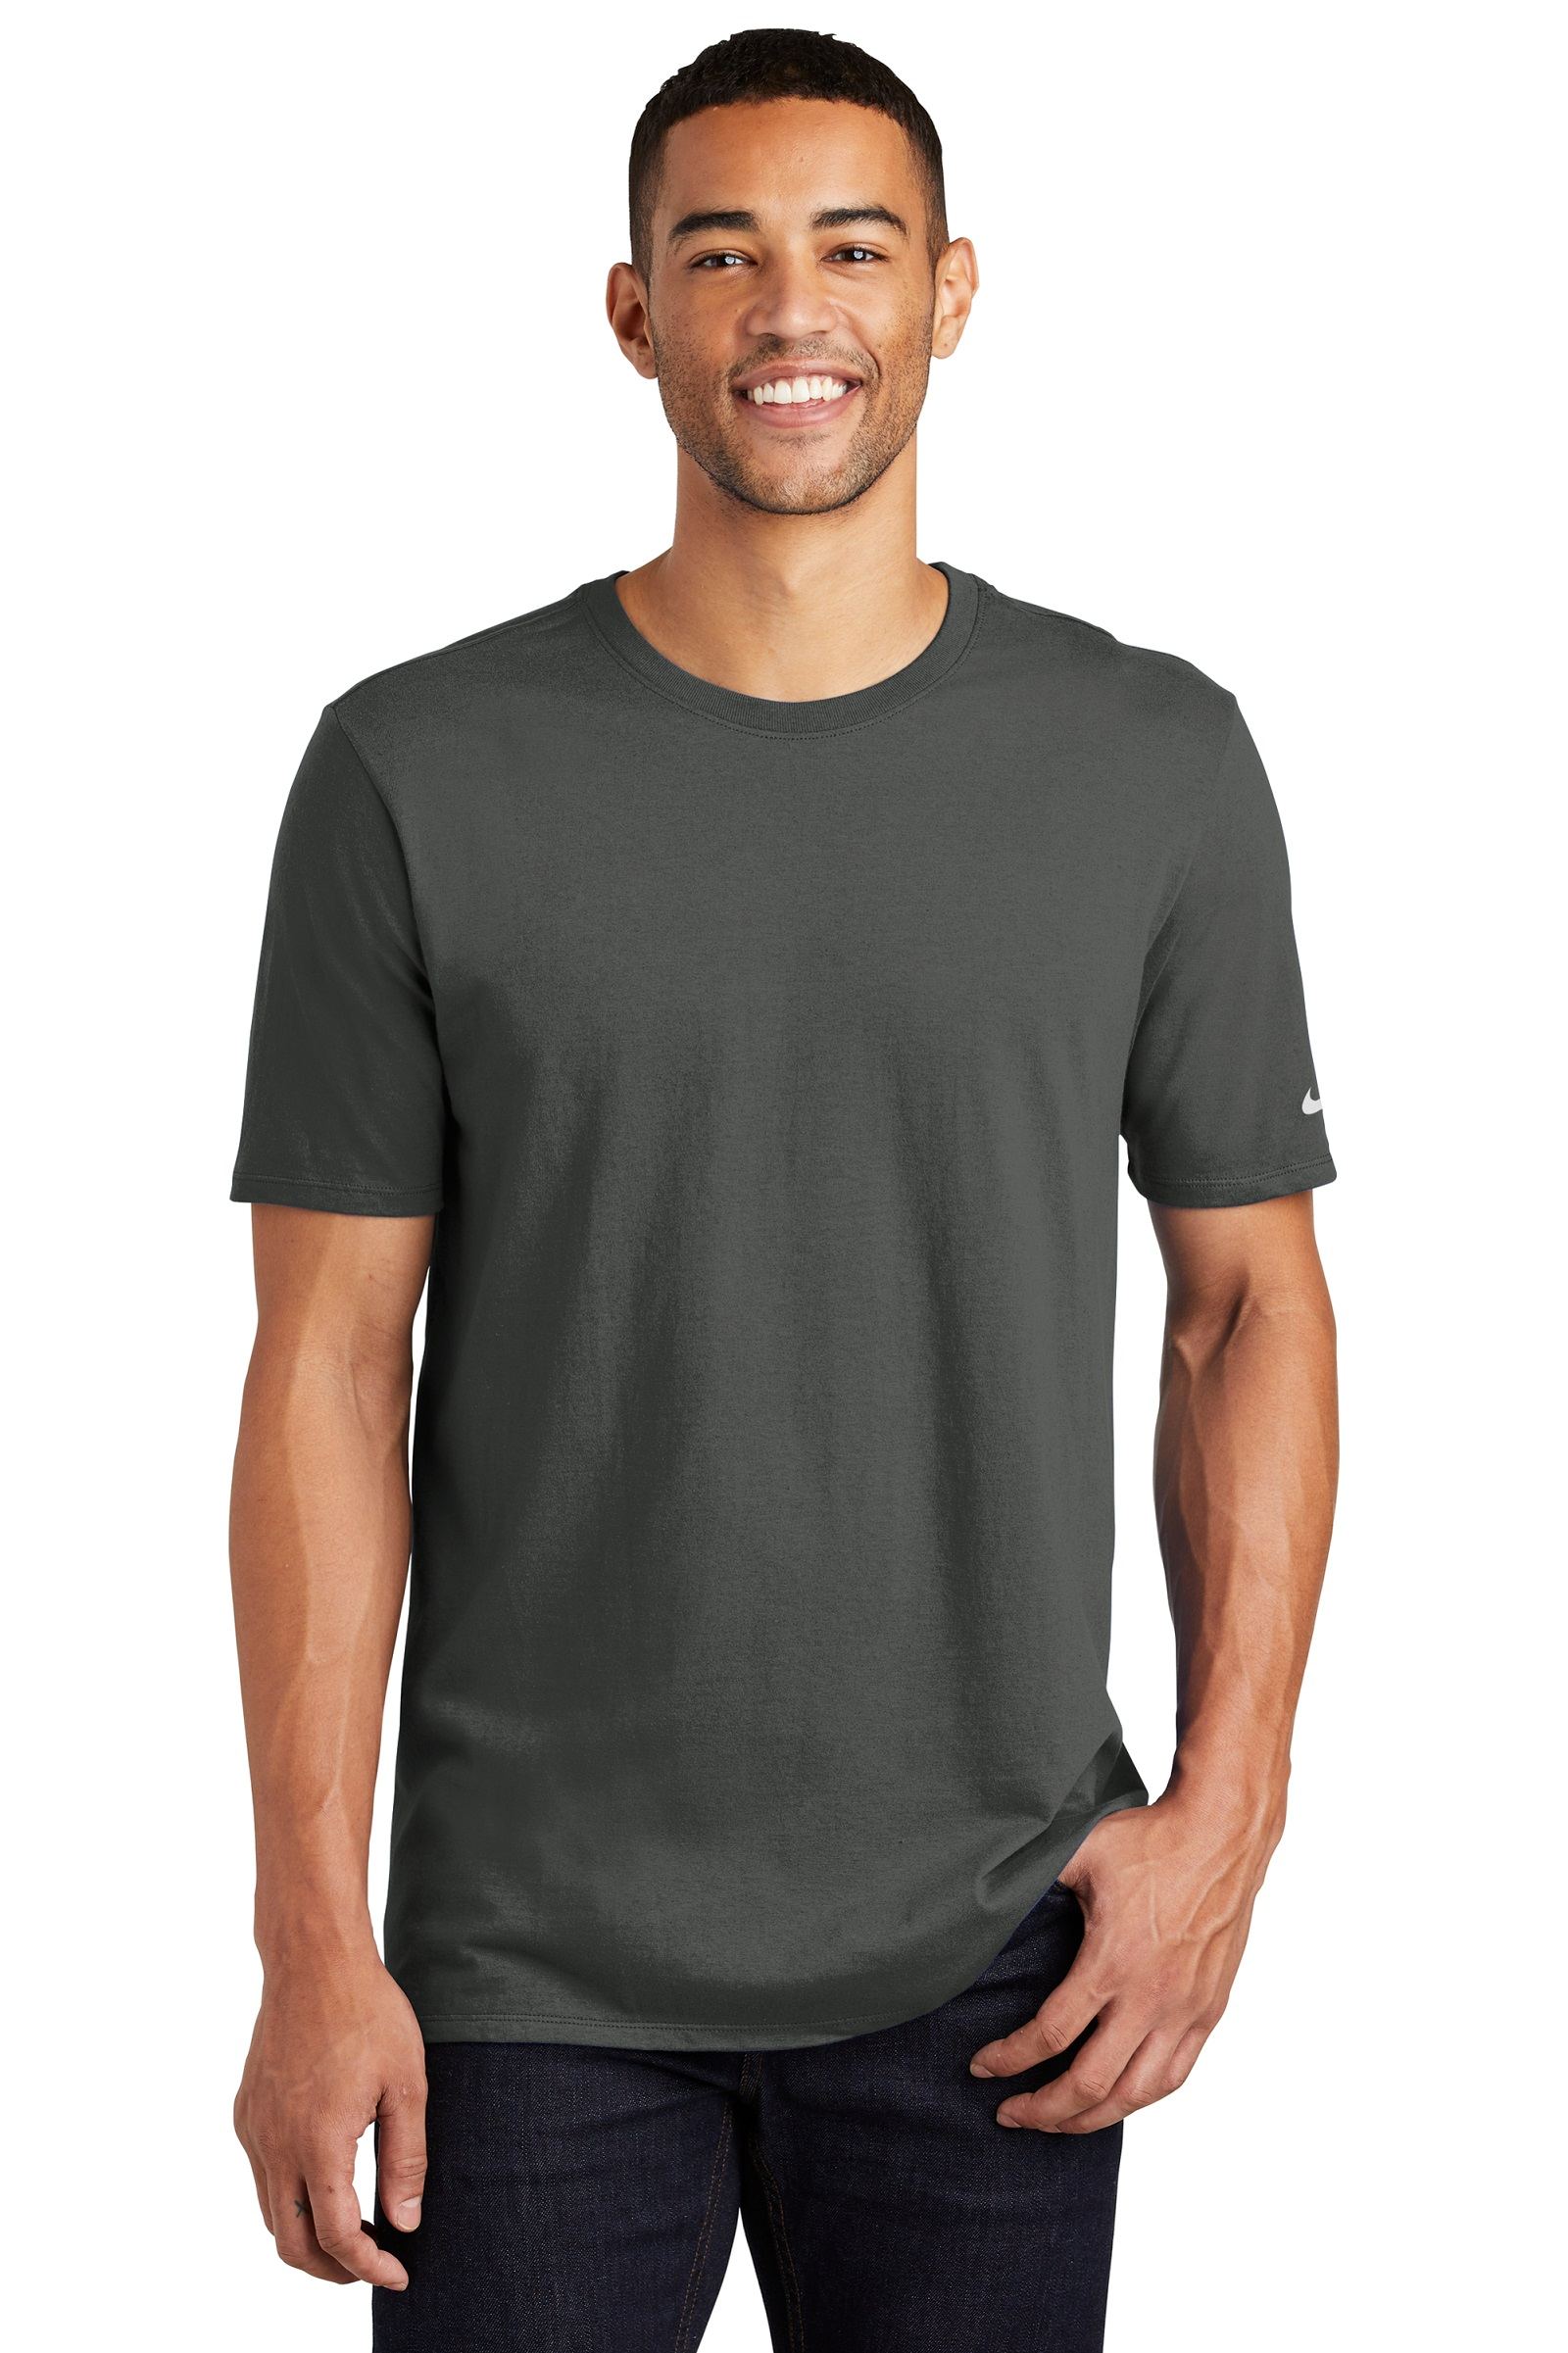 Nike Embroidered Men's Core Cotton Tee